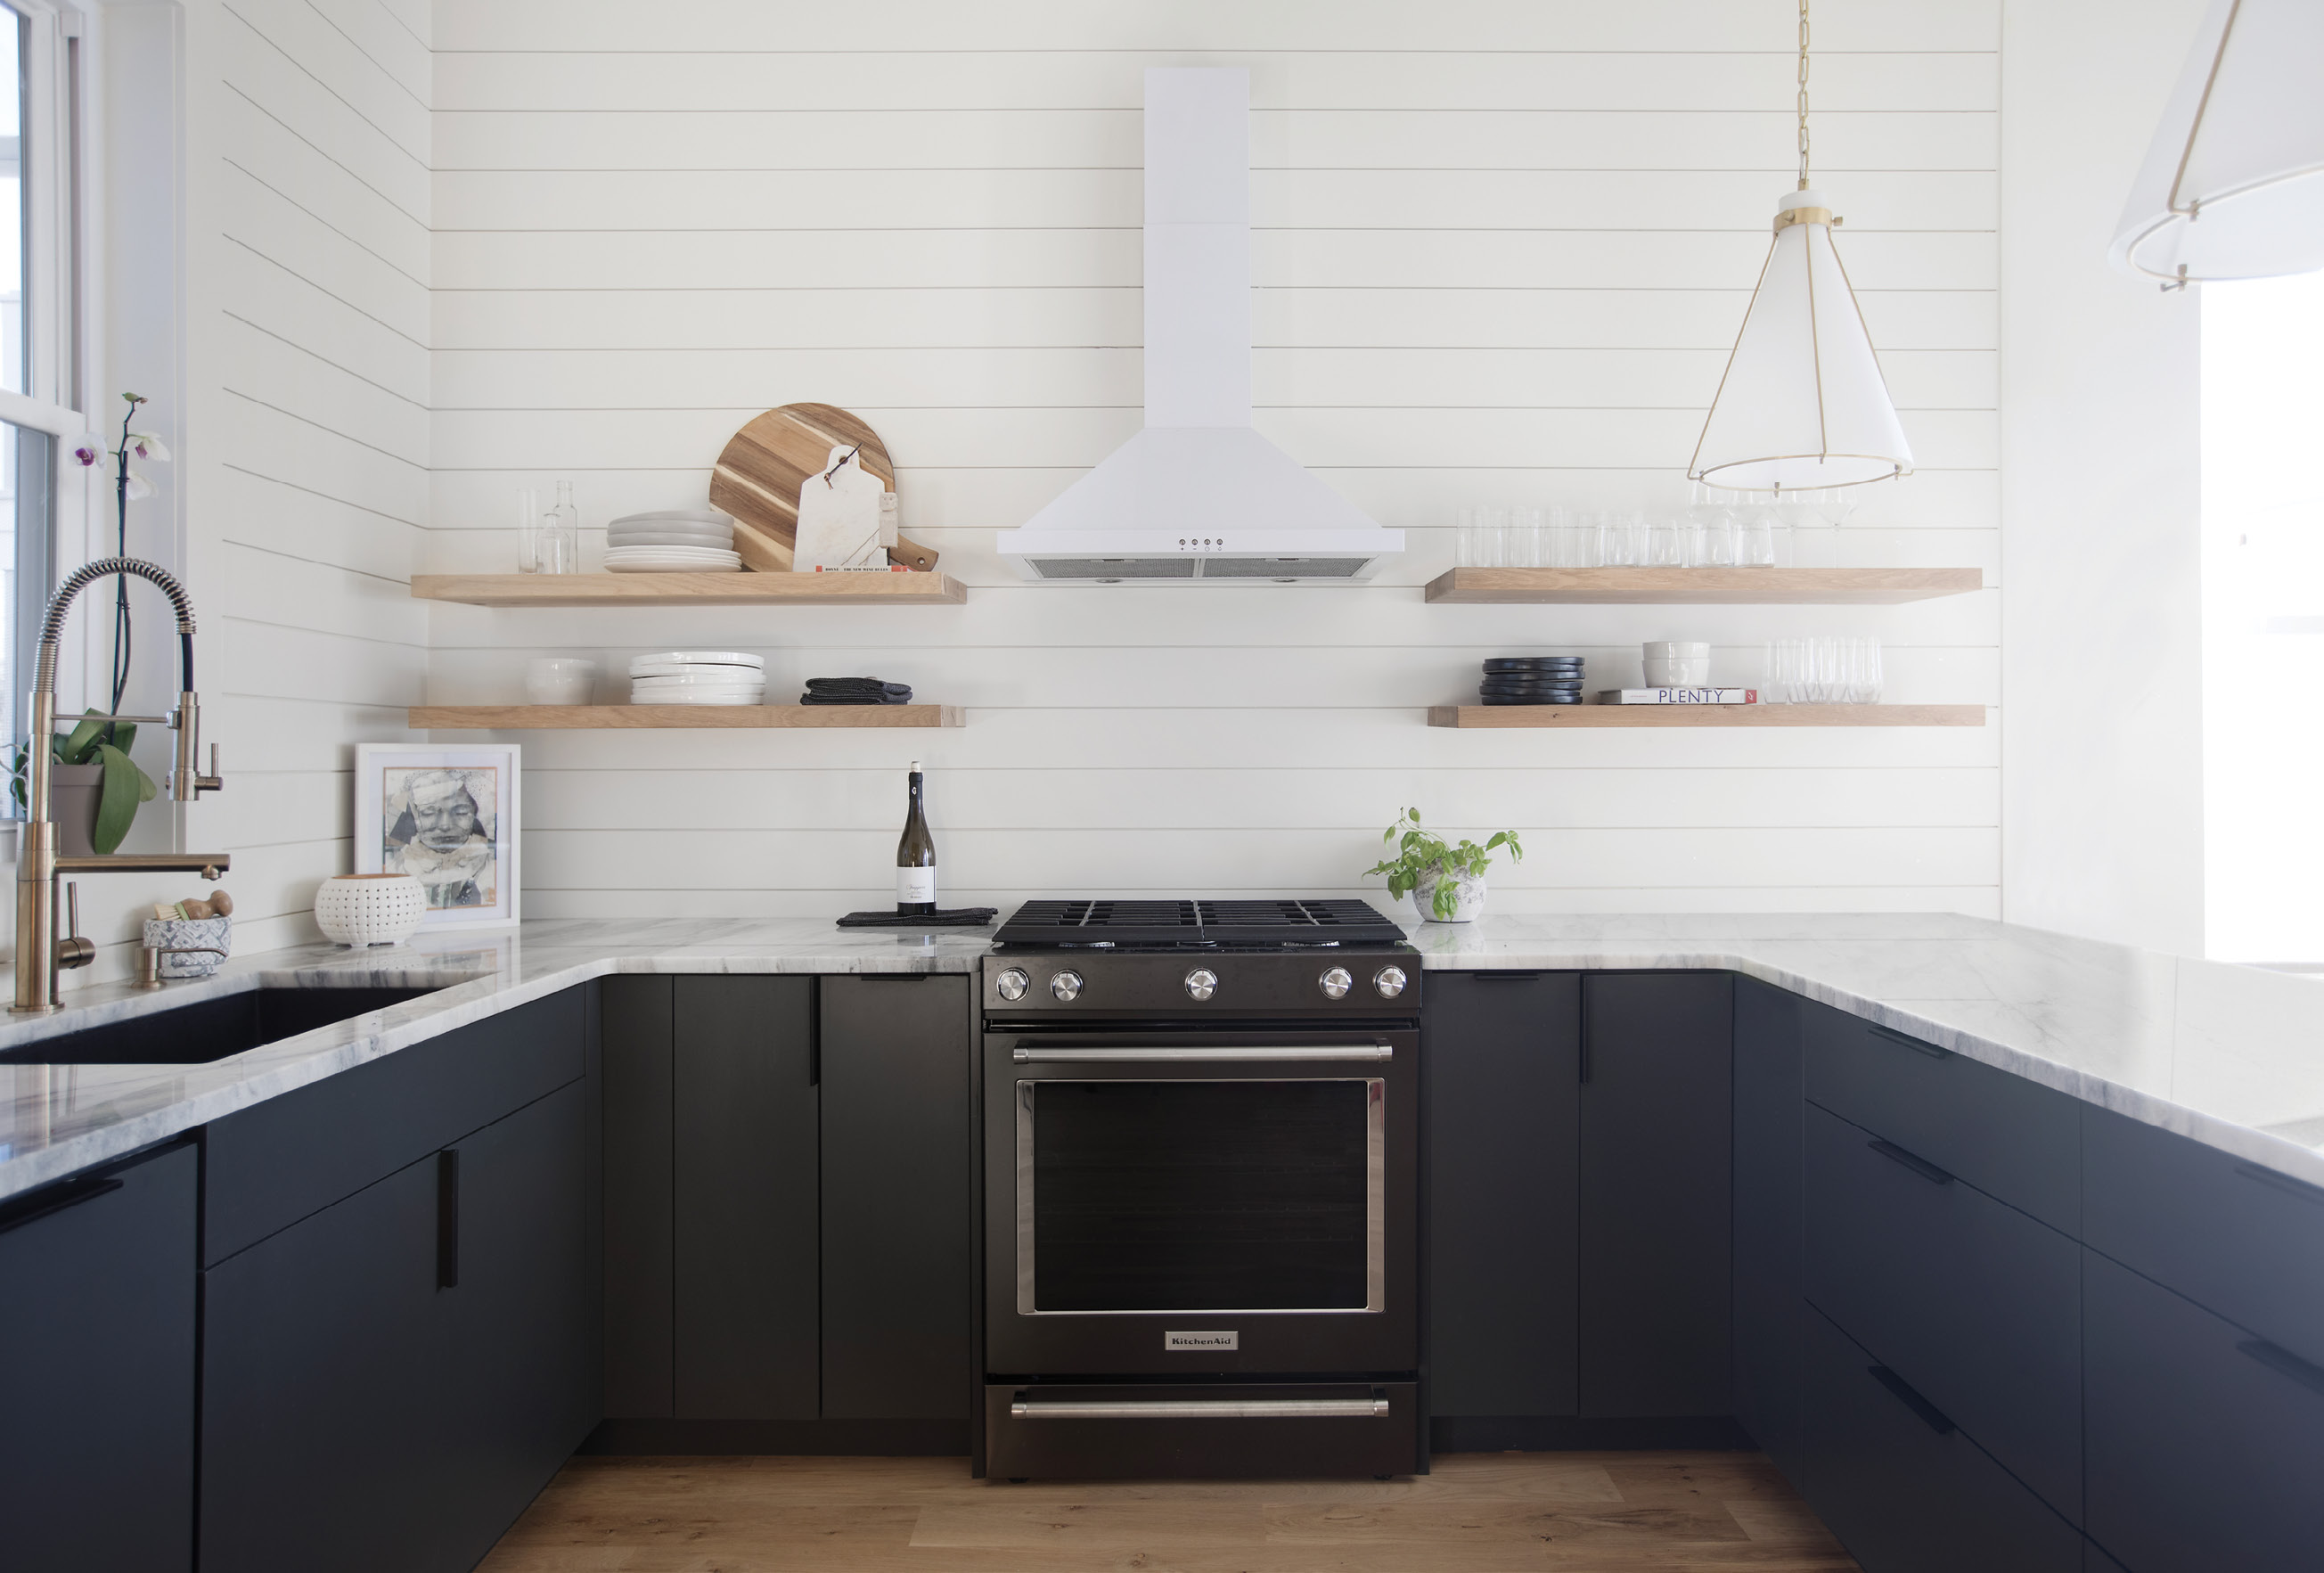 "LINEAR THINKING: Open shelving and shiplap walls create an inviting kitchen space that flows seamlessly from the adjoining dining area, replete with green velvet chairs by Moes (""They're so easy to clean!"" says Vickers). She chose shiplap as it's less expensive than a tile backsplash and helped with the continuity of the space."